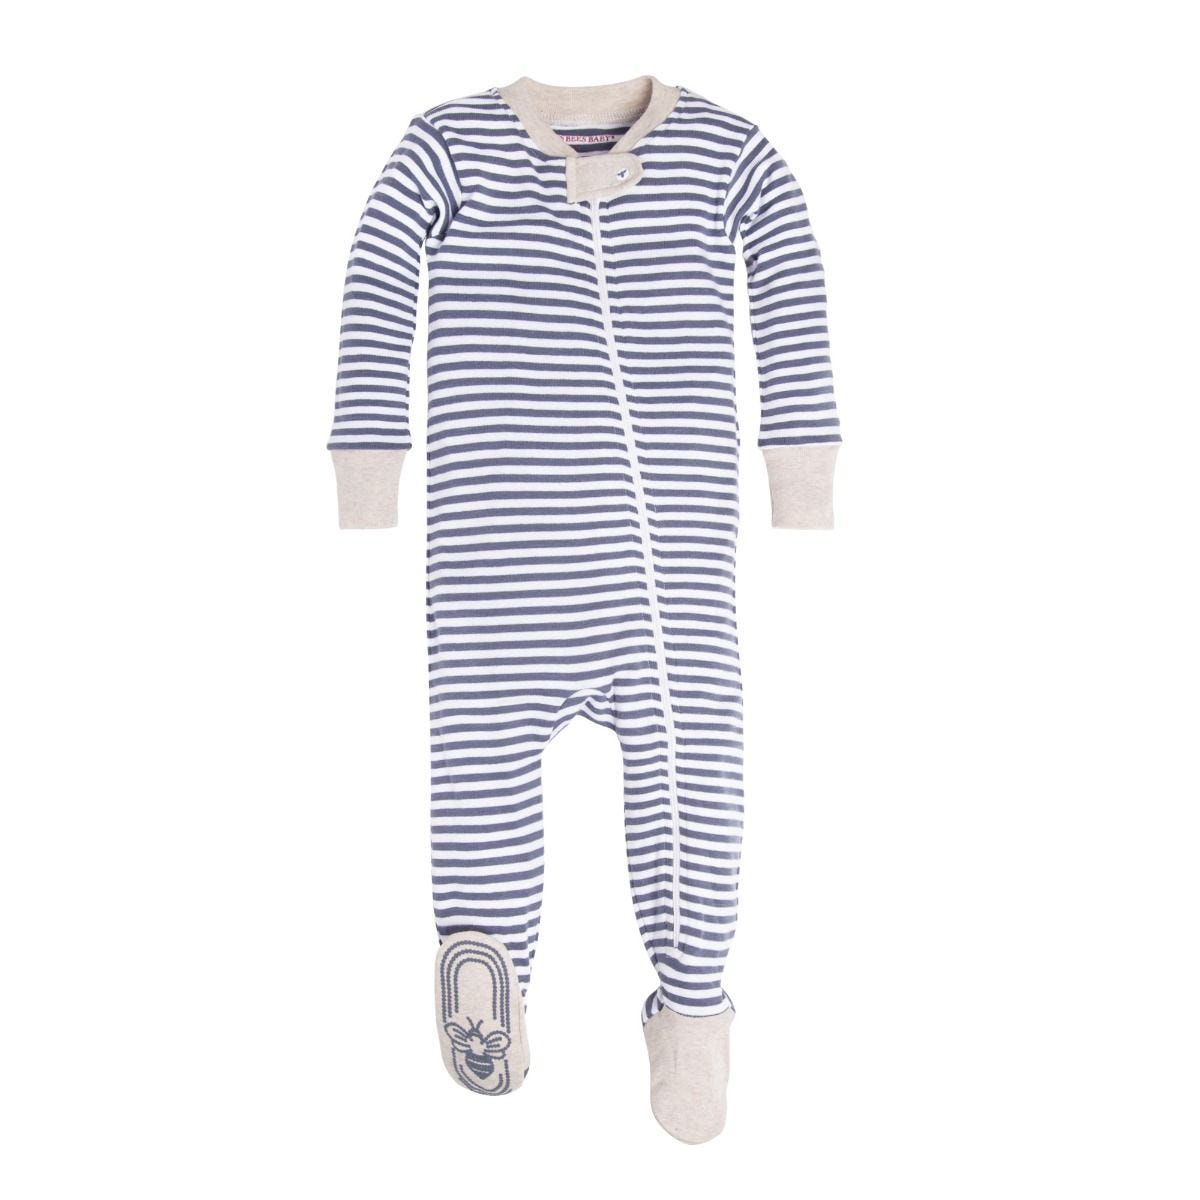 eca0fb5d1ee3 Stripe Organic Baby Zip Up Footed Pajamas